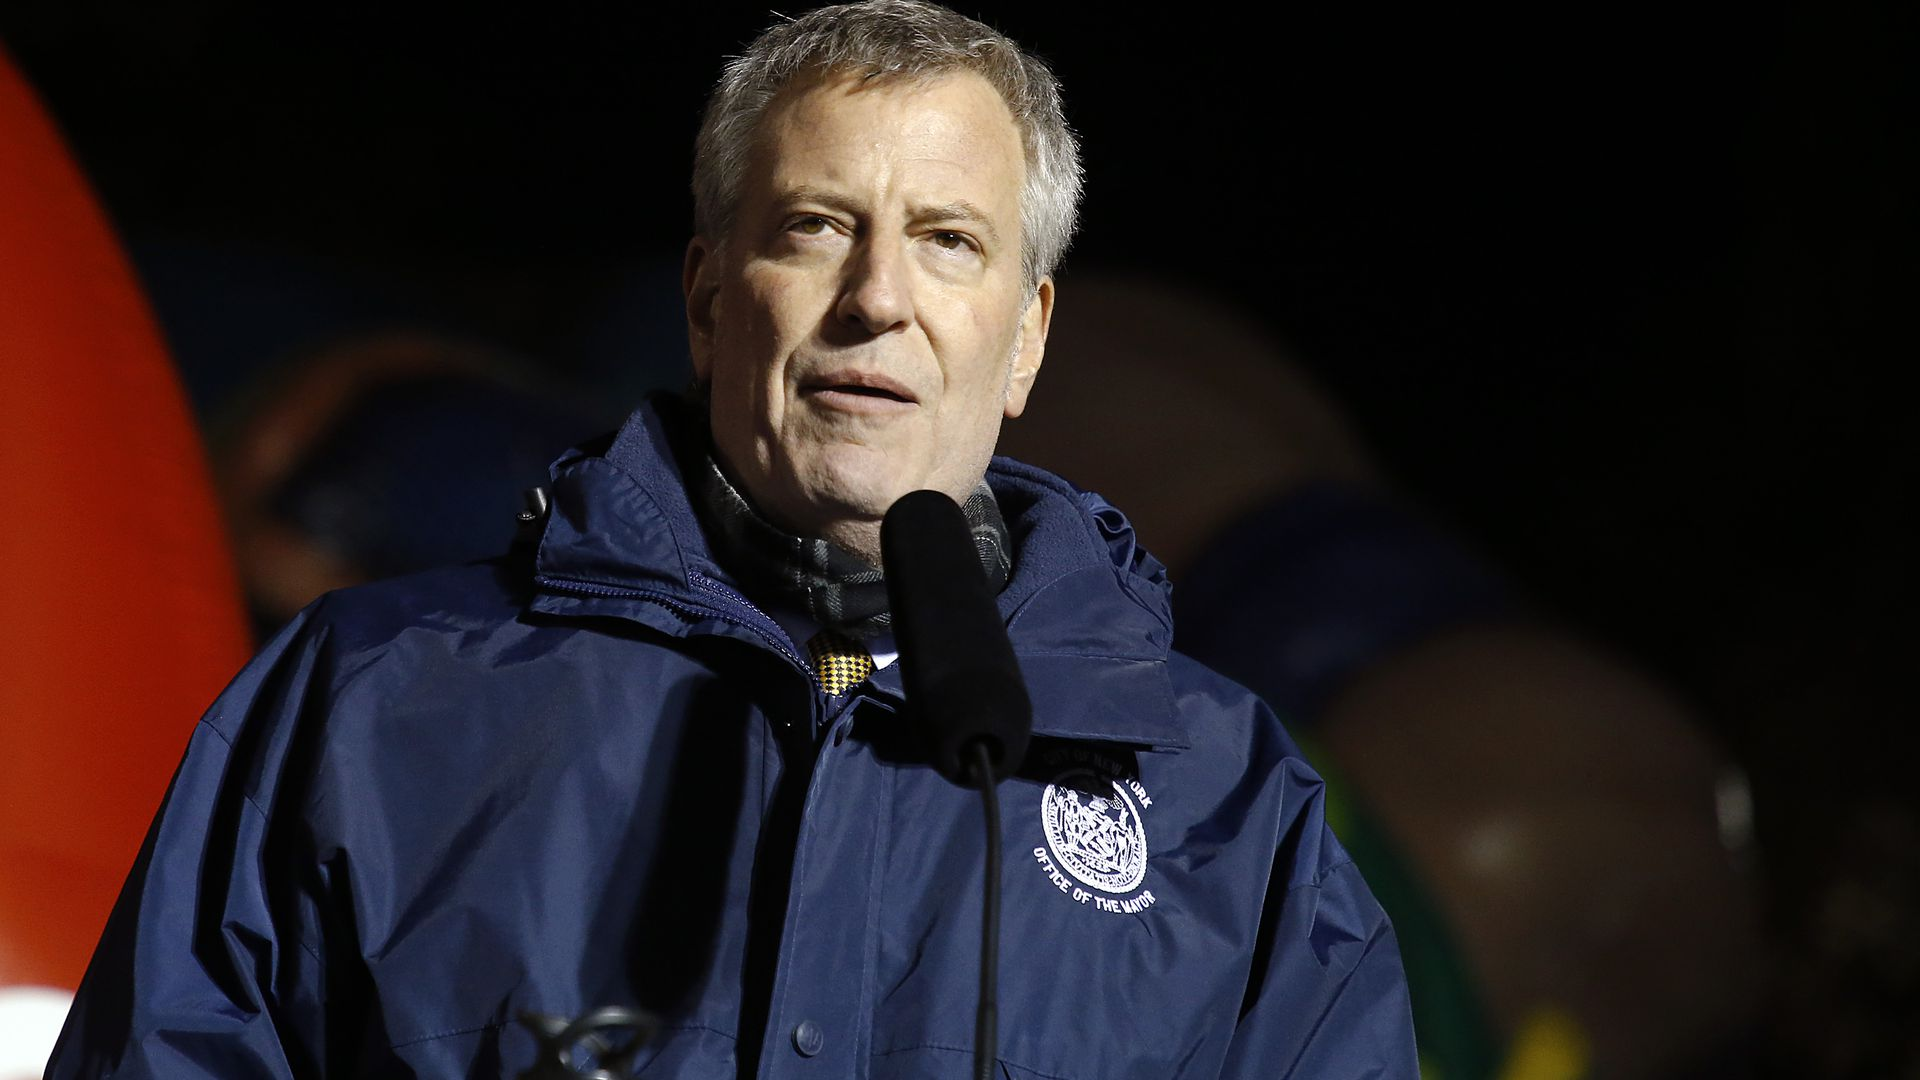 New York Mayor Bill de Blasio in a rain jacket